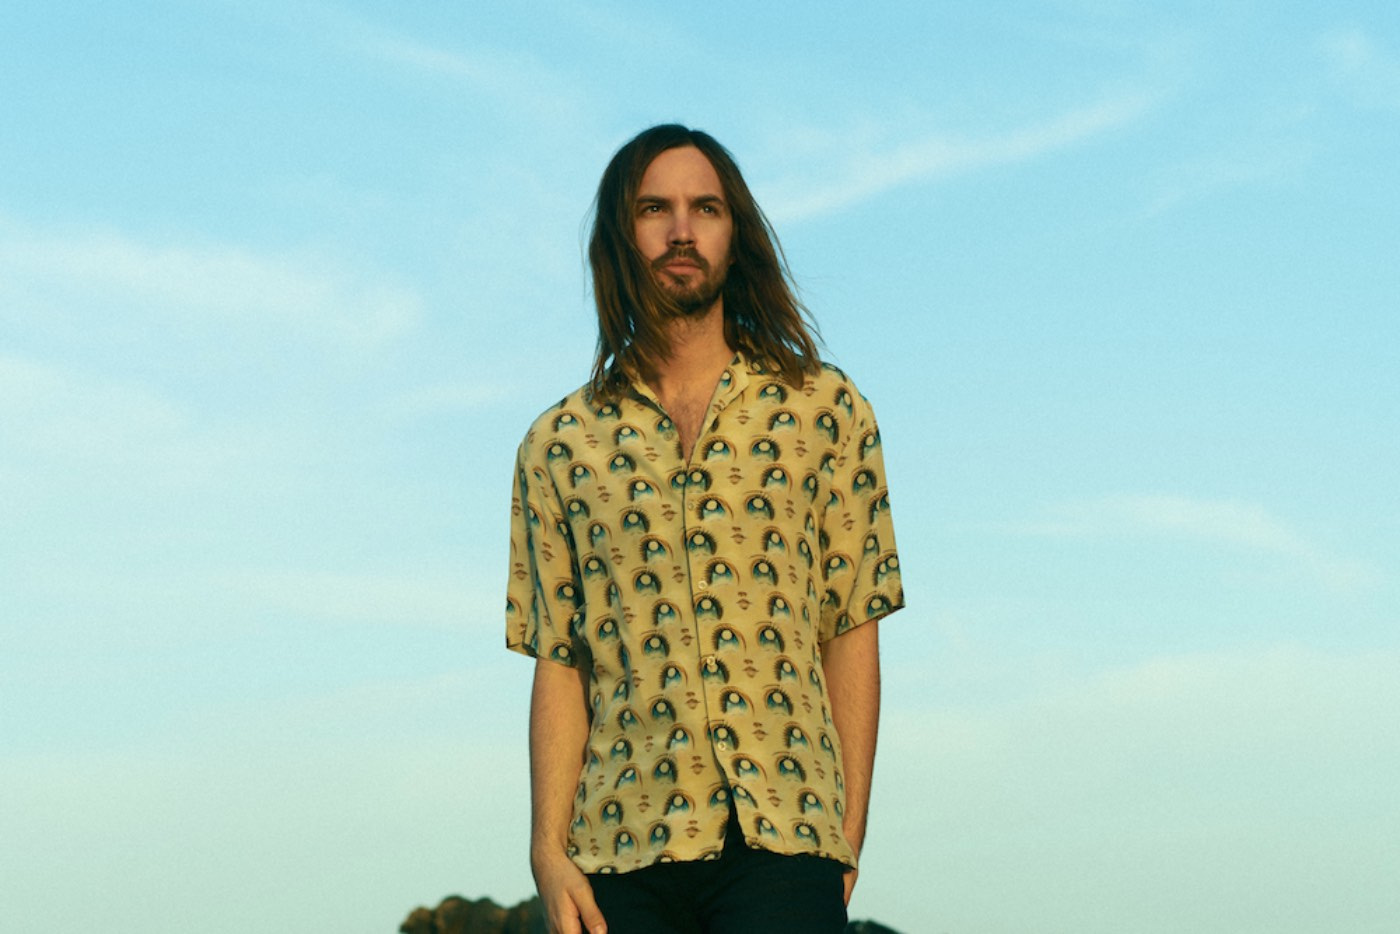 En streaming Lonerism, de Tame Impala